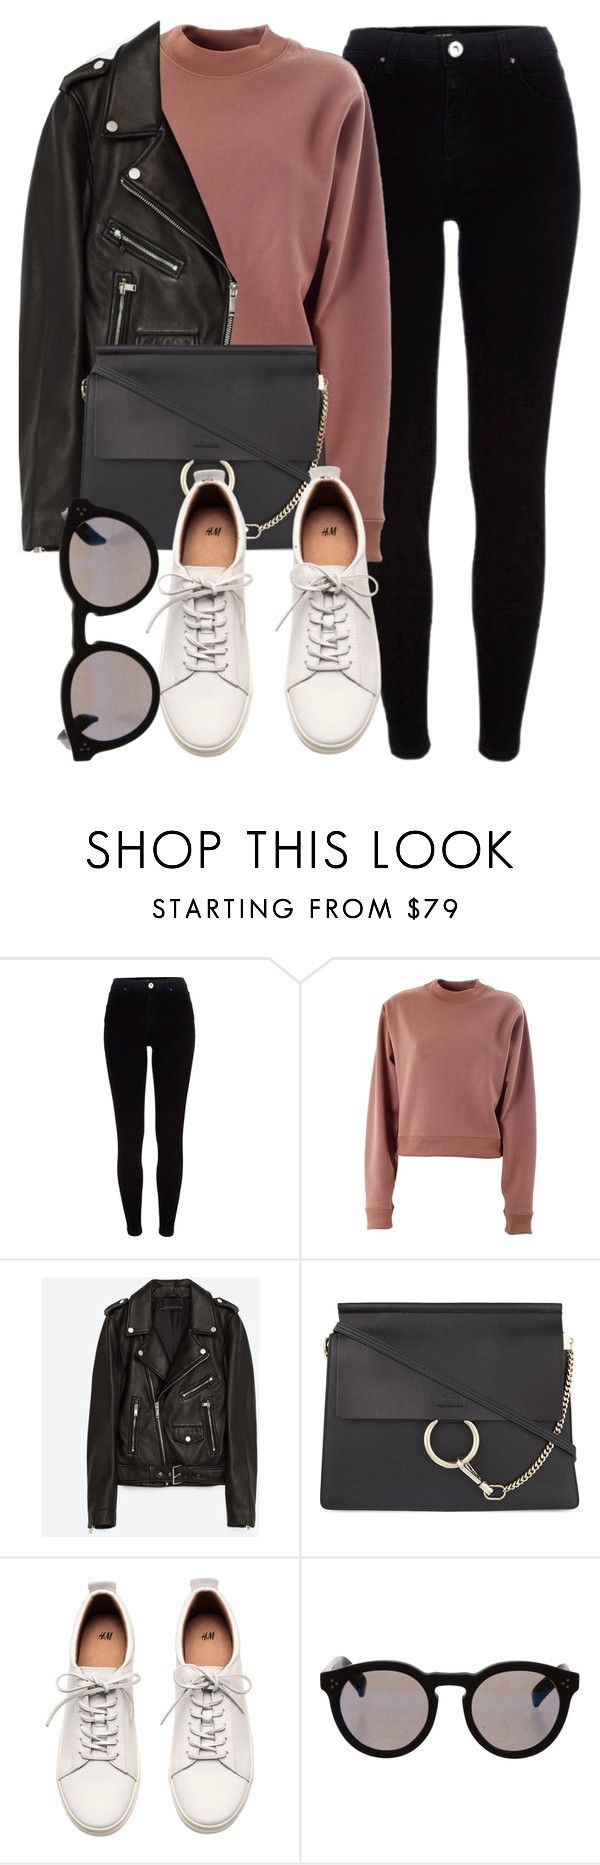 """Untitled #6331"" by laurenmboot ❤ liked on Polyvore featuring River Island, Acne Studios, Jakke, Chloé, H&M and Illesteva"